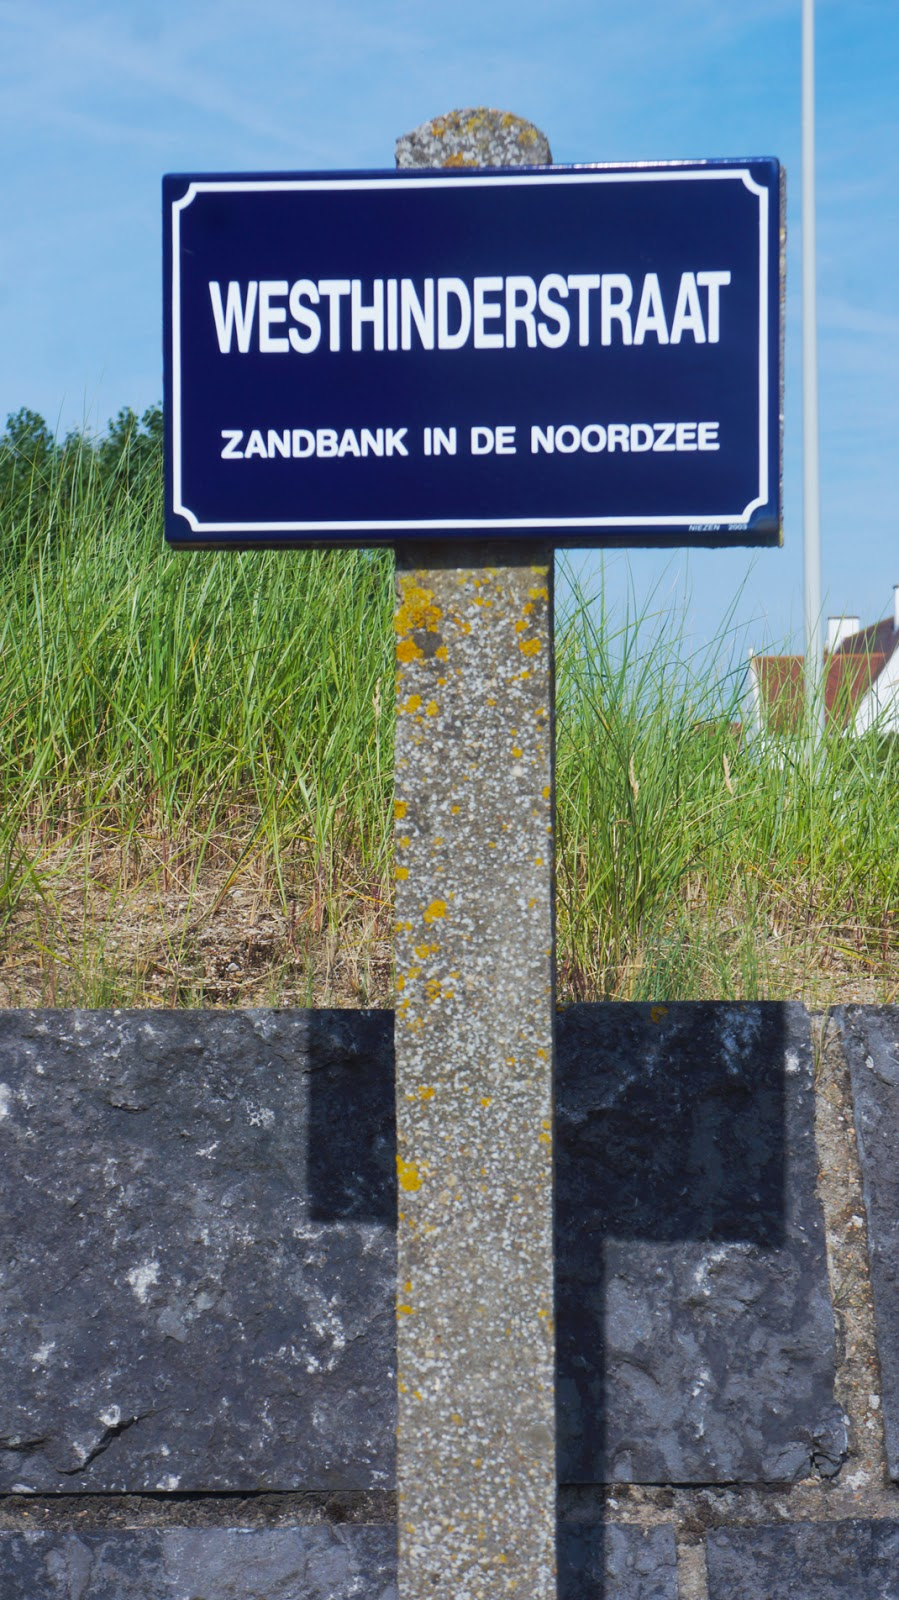 WESTHINDERSTRAAT  ZANDBANK IN DE NOORDZEE - JON THE GOLD IN KNOKKE . My moet moment in knokke